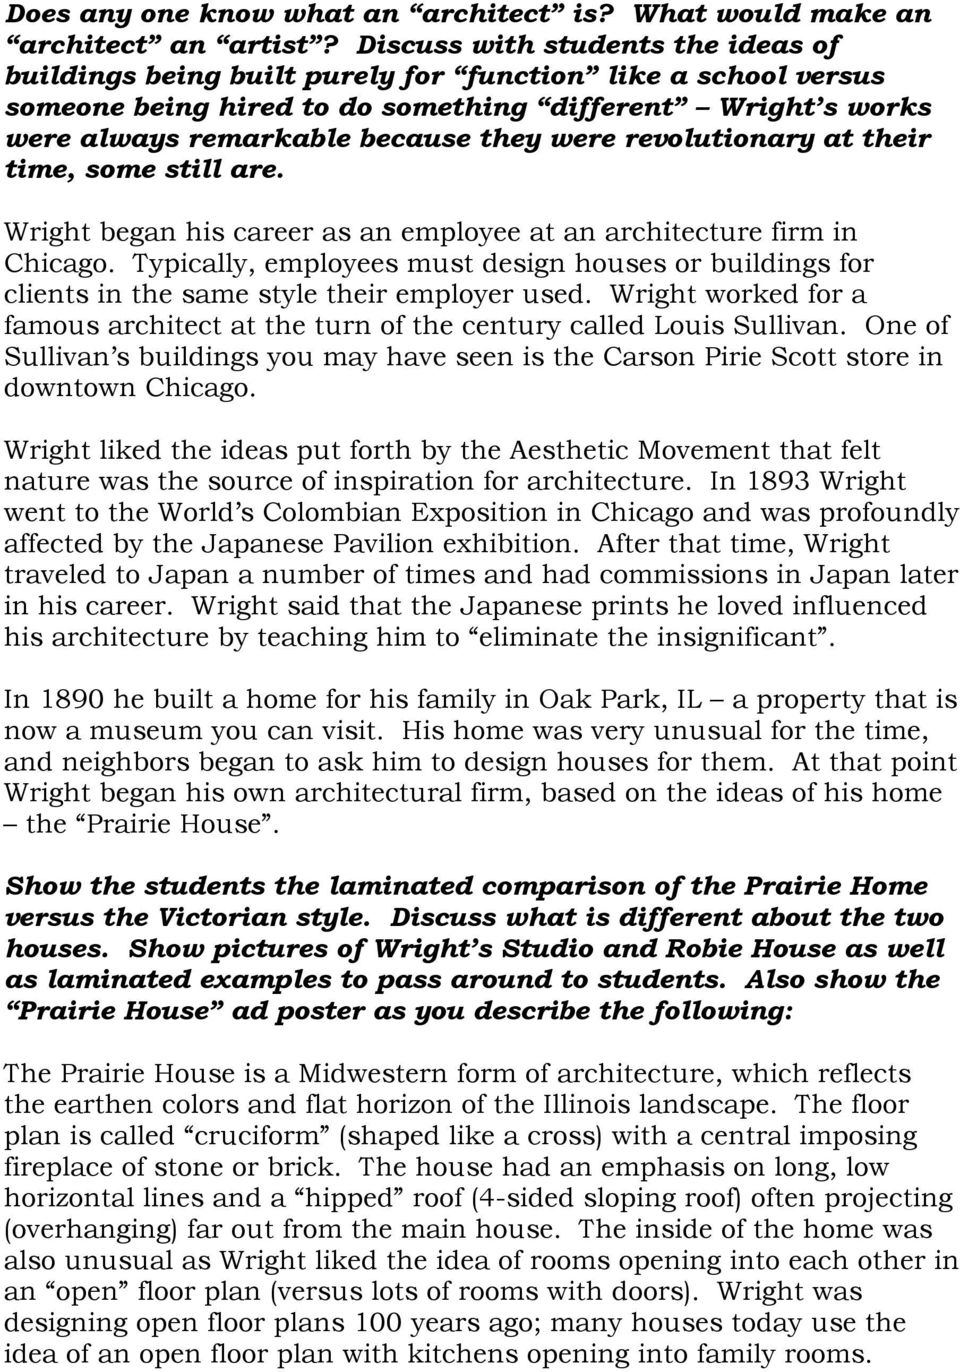 revolutionary at their time, some still are. Wright began his career as an employee at an architecture firm in Chicago.